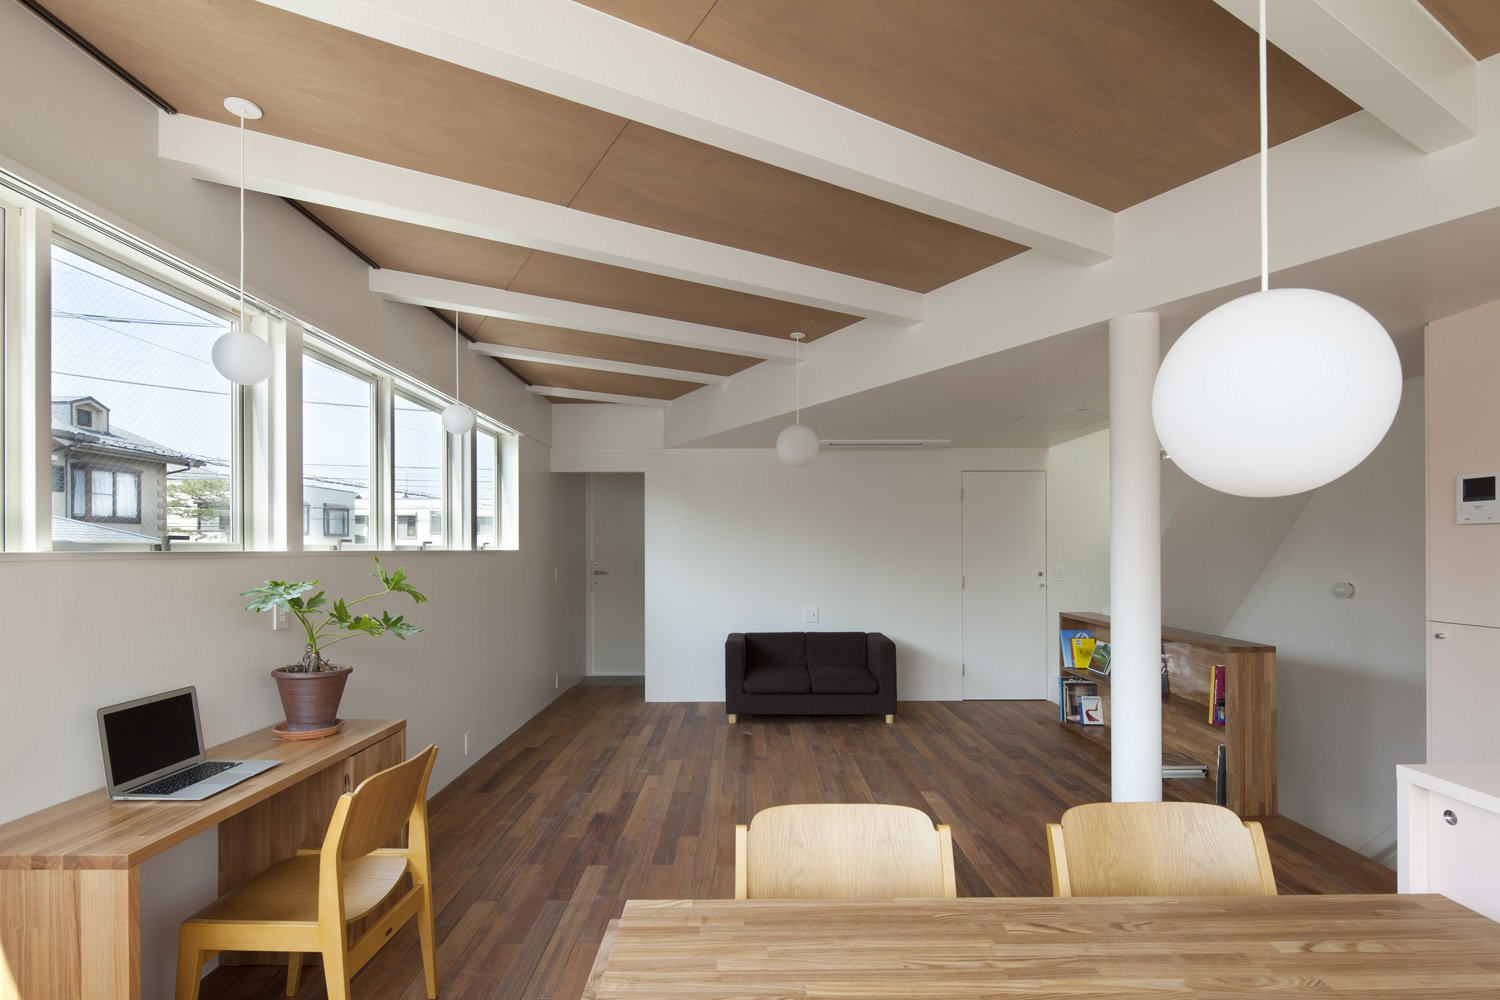 The ceilings of the two houses were at slightly different heights, an incongruity Nakasi played up for visual punch. He exposed the beams in the higher ceiling and painted them white to match the smooth finish of the lower one. The desk beneath the window is from Muji.